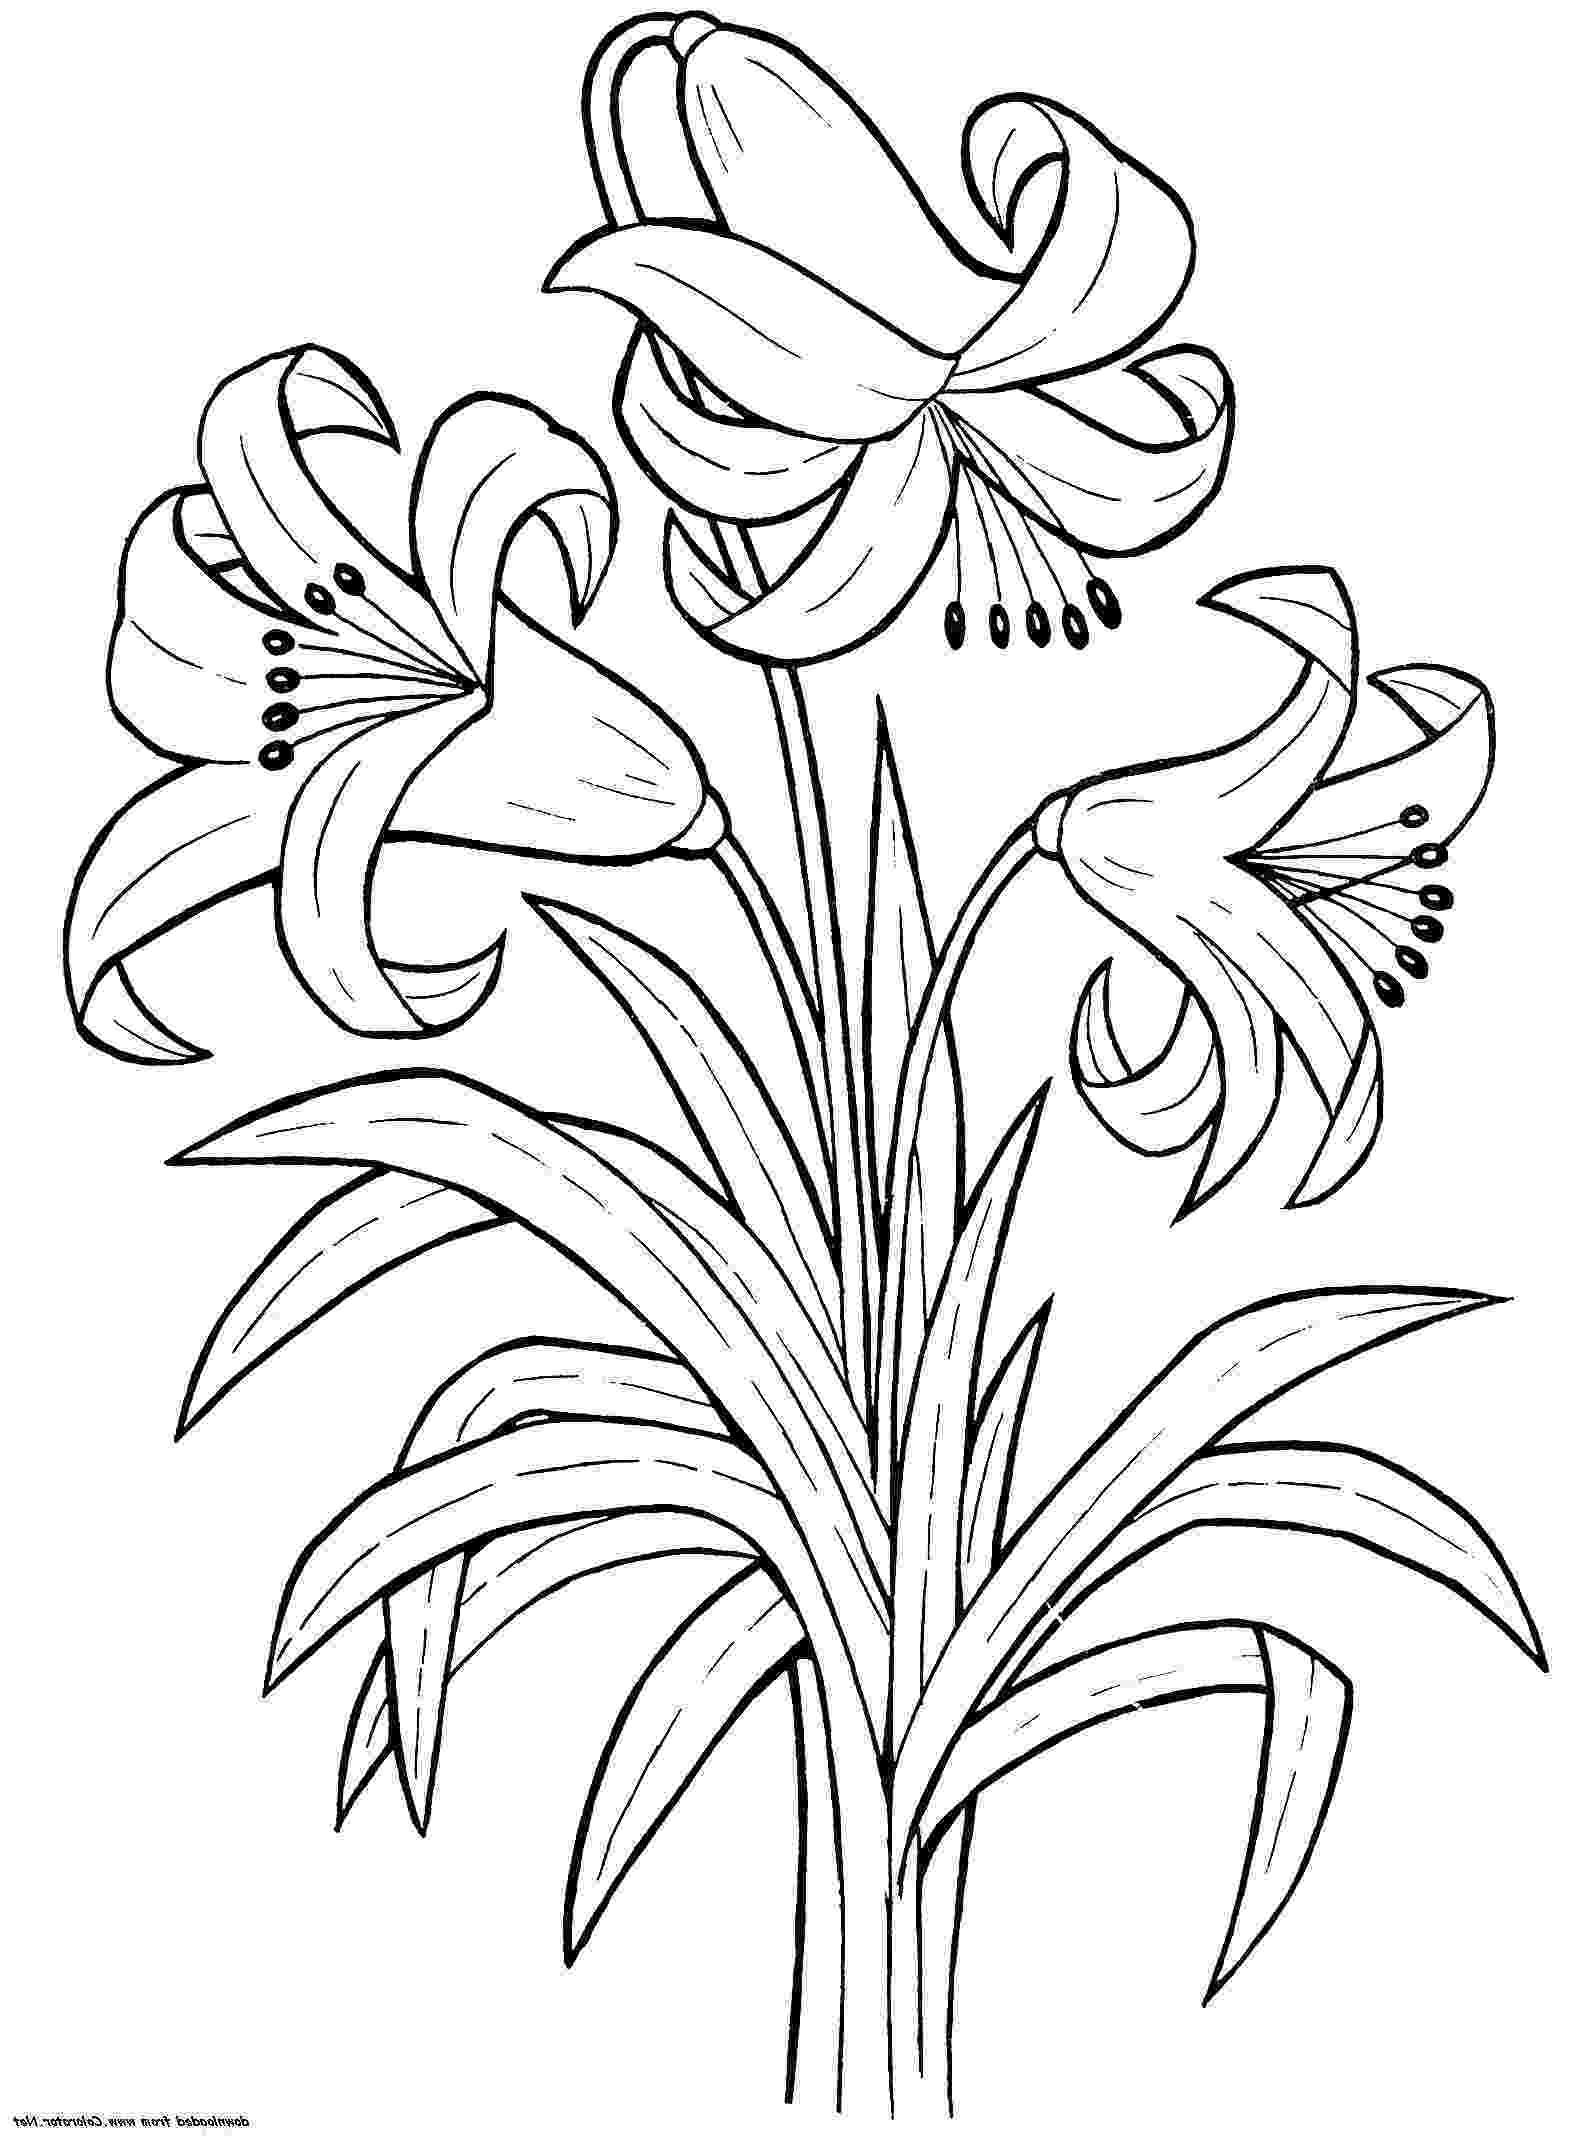 lily flower coloring pages printable lily flower coloring pages k5 worksheets pages coloring lily flower